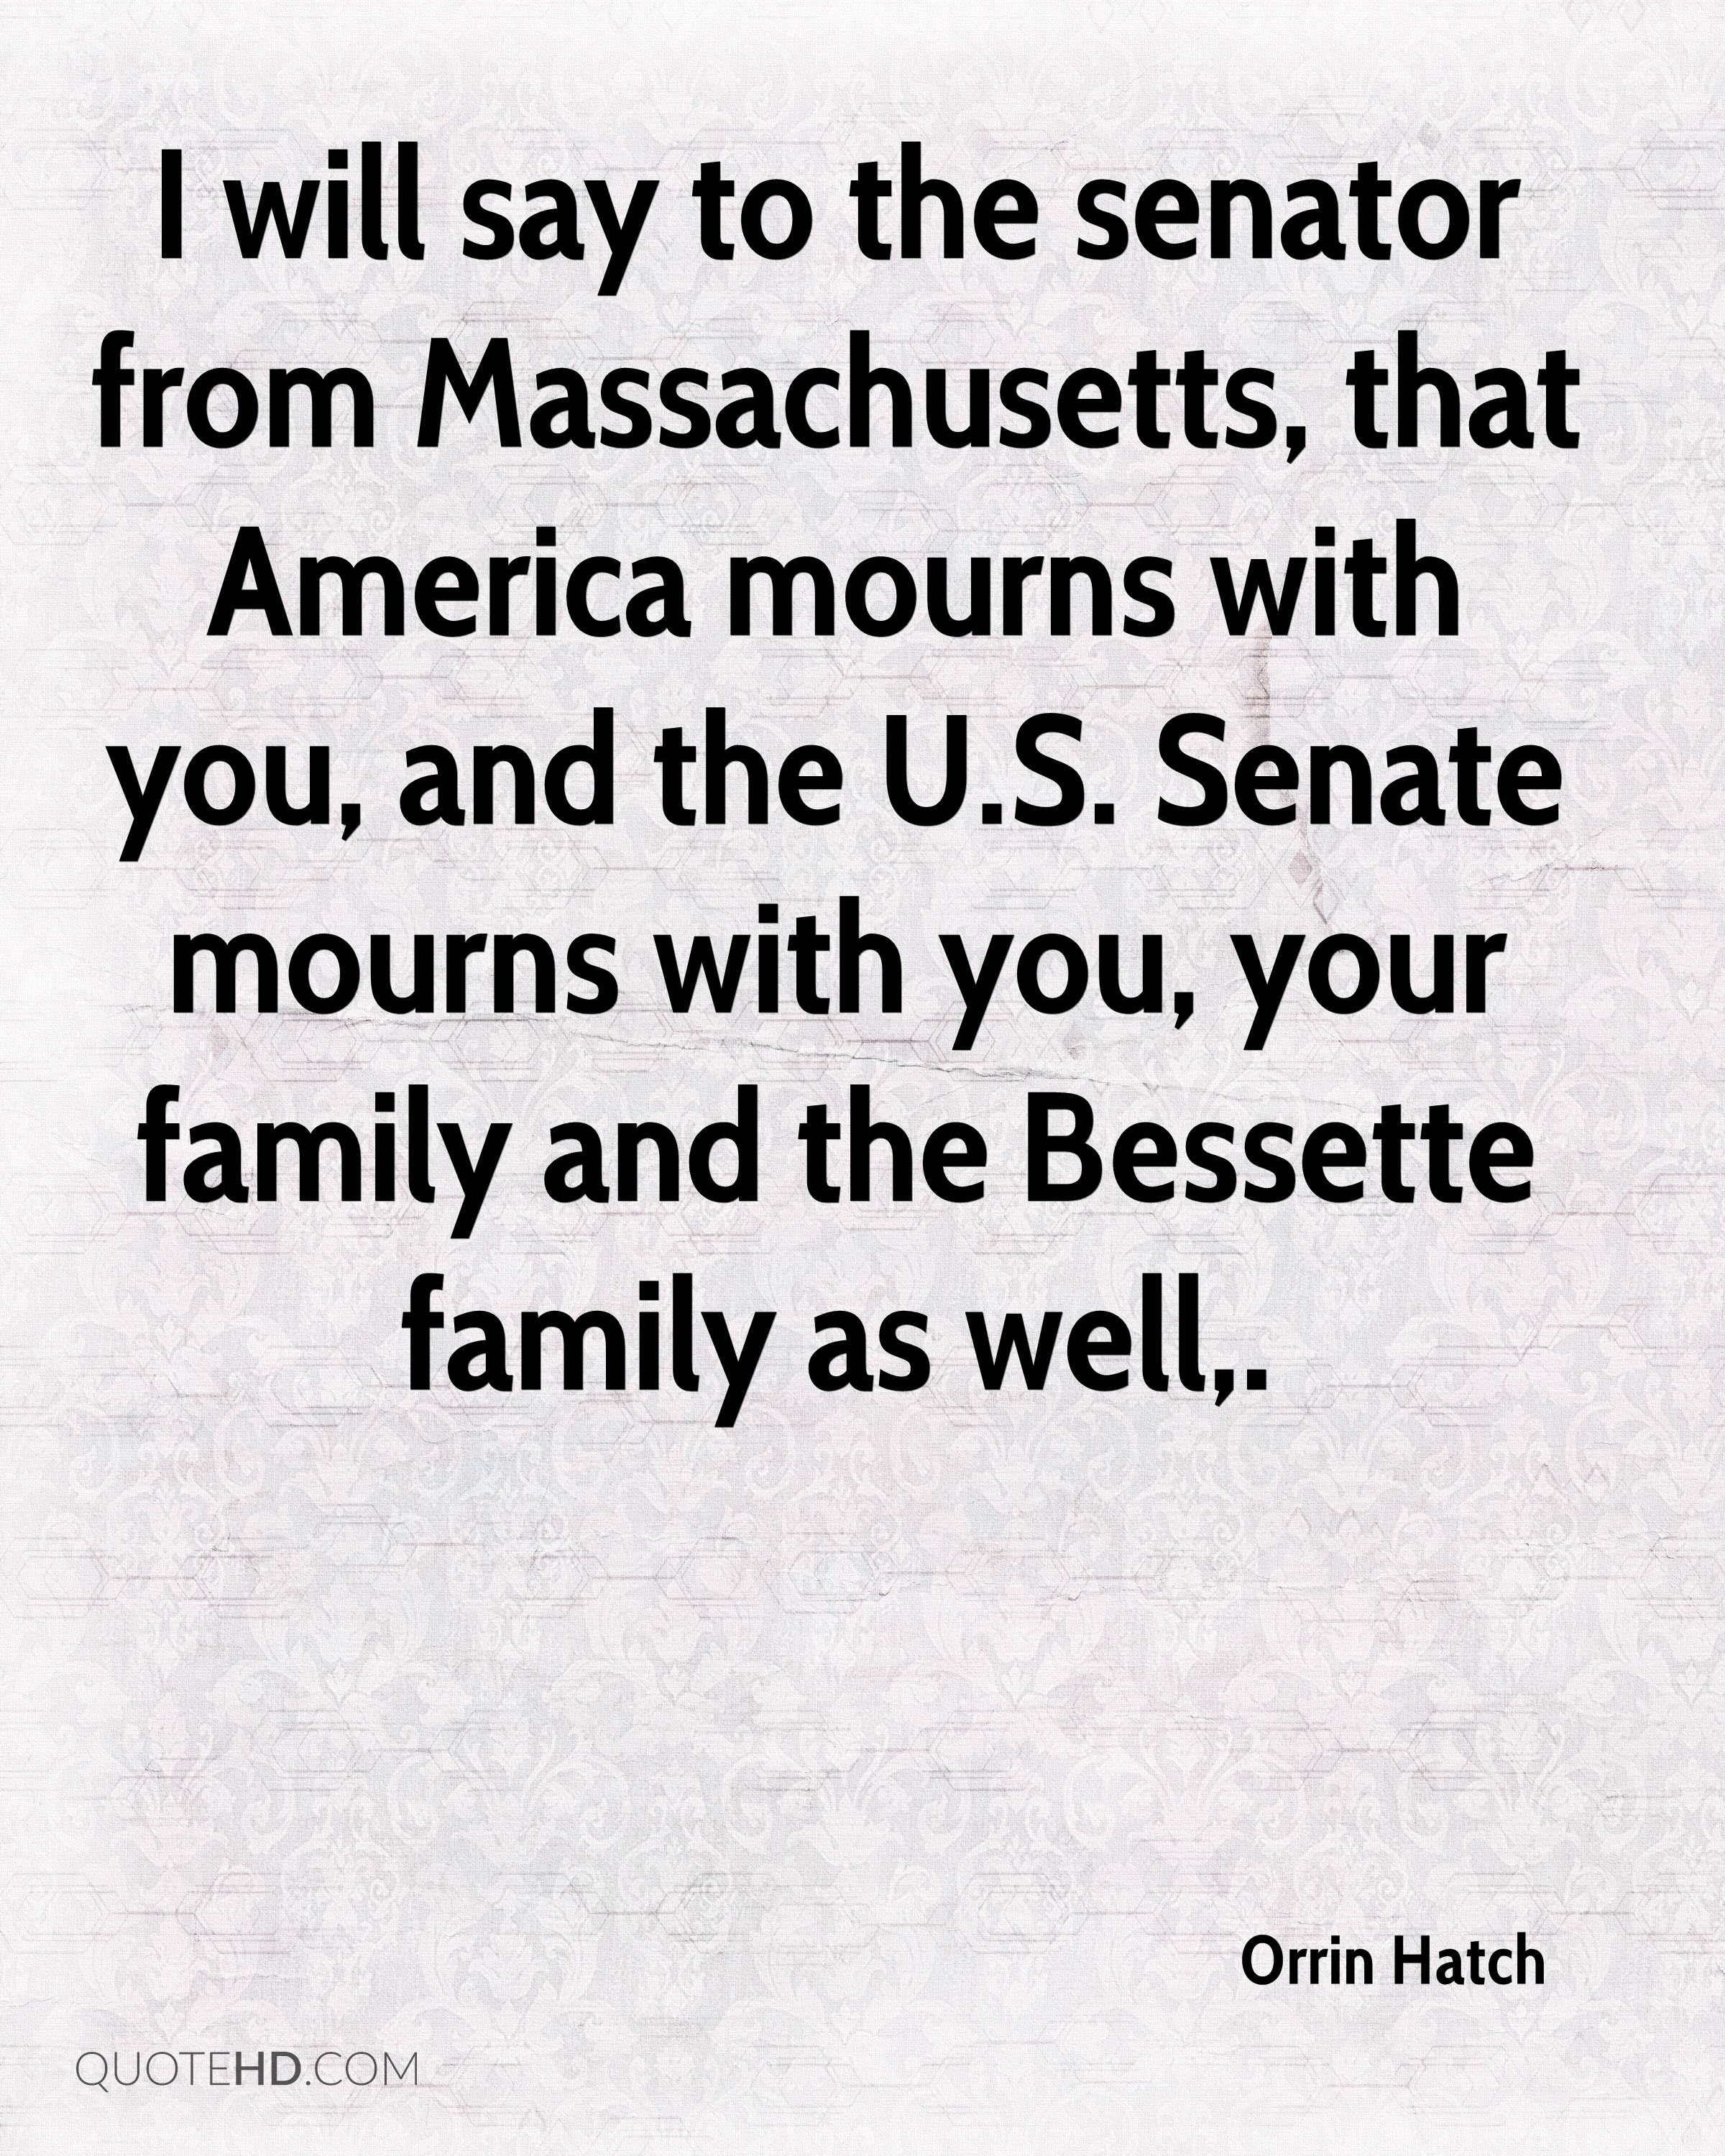 I will say to the senator from Massachusetts, that America mourns with you, and the U.S. Senate mourns with you, your family and the Bessette family as well.